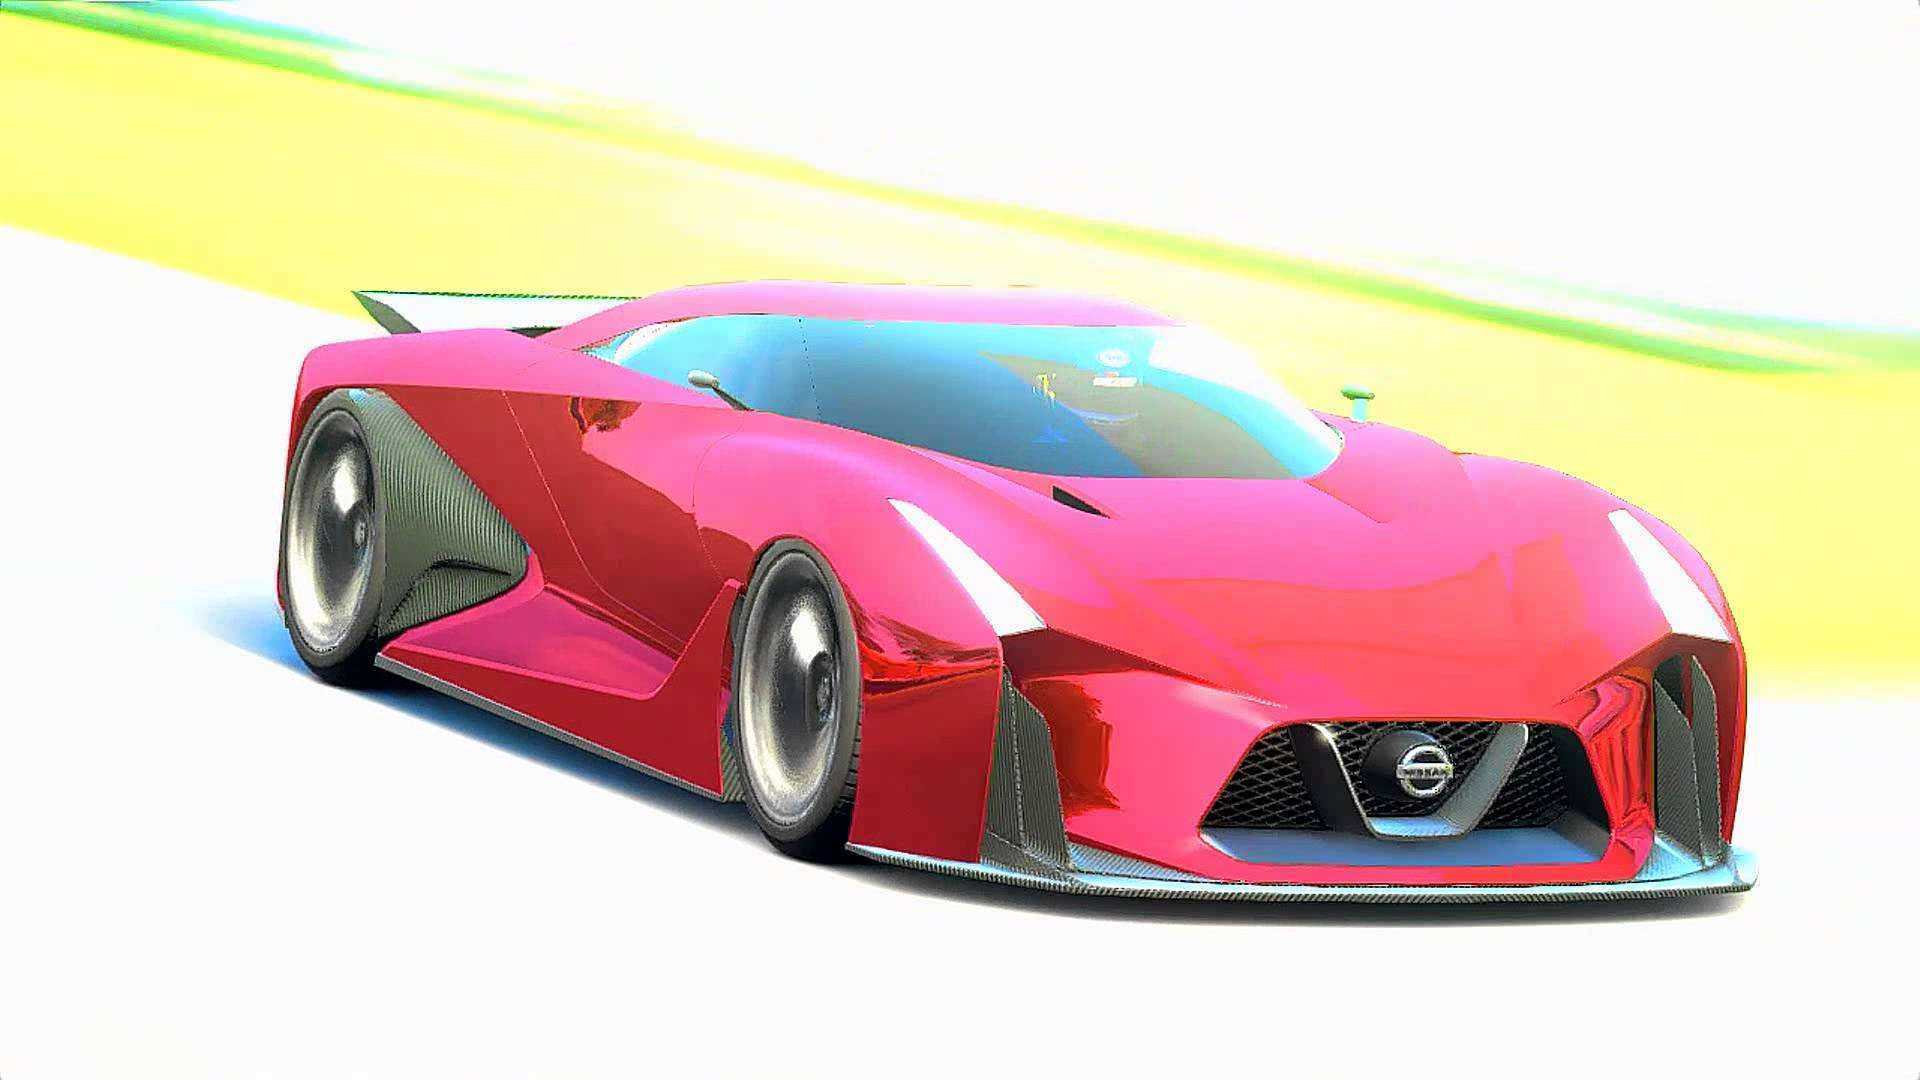 36 Concept of Nissan Gtr 2020 Top Speed Style by Nissan Gtr 2020 Top Speed